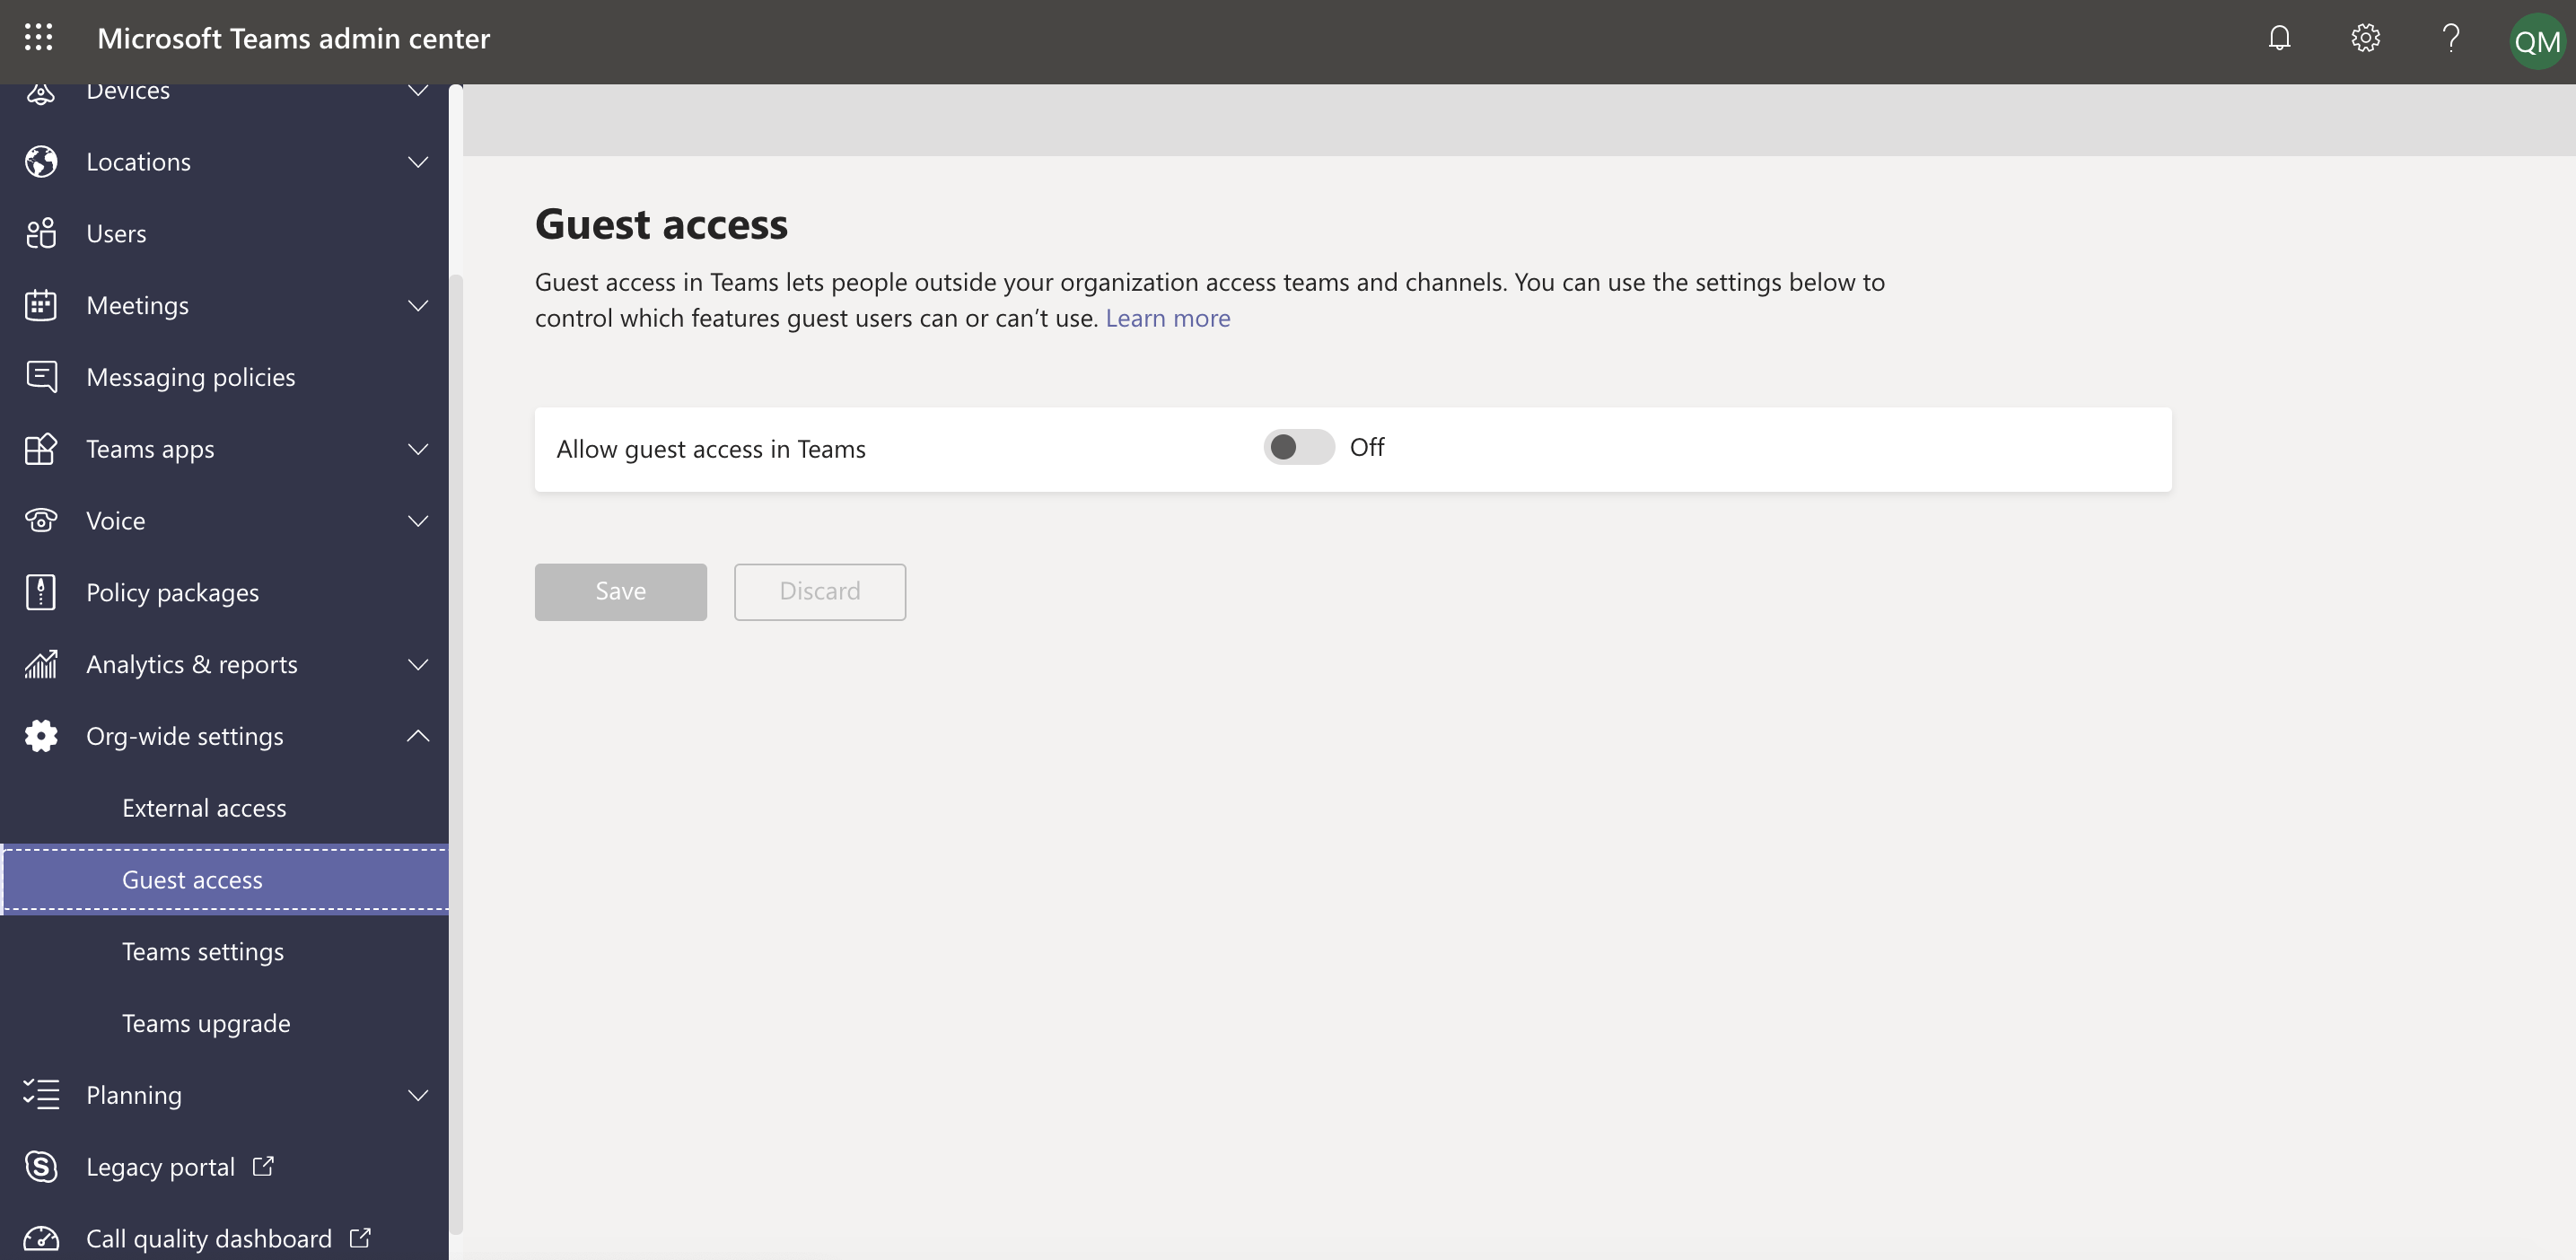 Select guest access under Org-wide settings